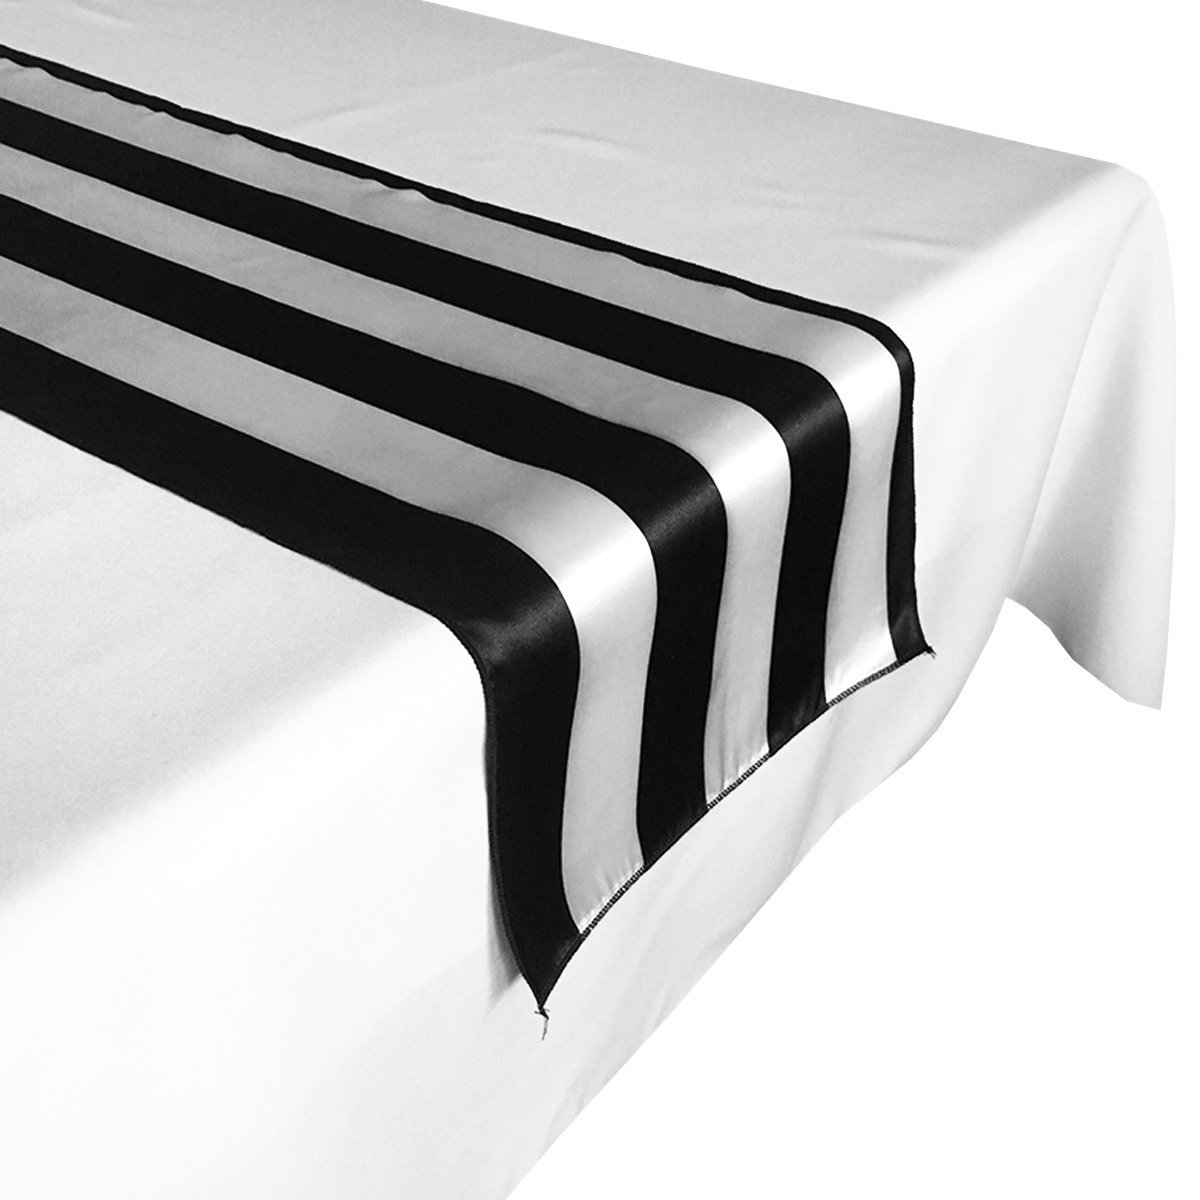 lovemyfabric Pack of 10 Satin 2 Inch Striped Table Runners For Wedding/Bridal Shower Birthdays/Baby Shower and Special Events (Black and White, 12''X72'') by lovemyfabric (Image #1)